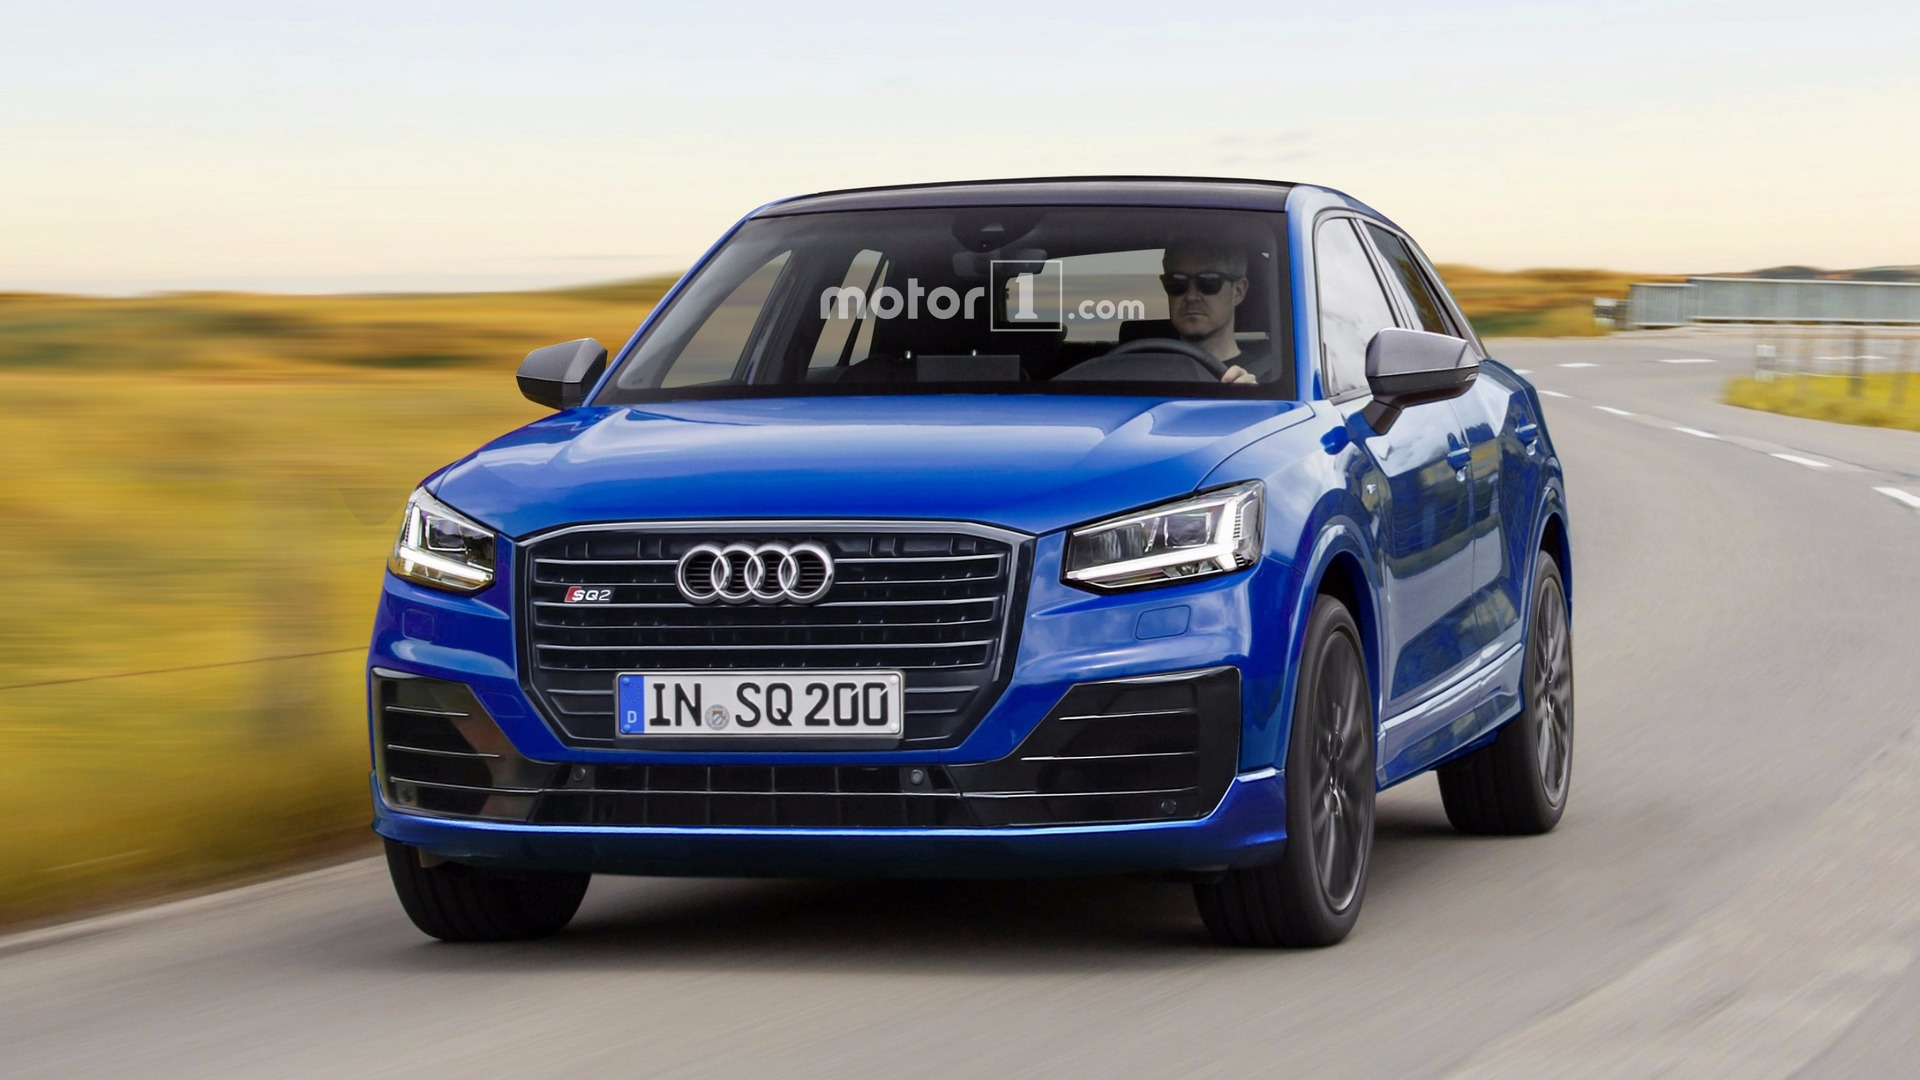 Audi Sq2 And Rs Q2 Renders Illustrate Plausible Future